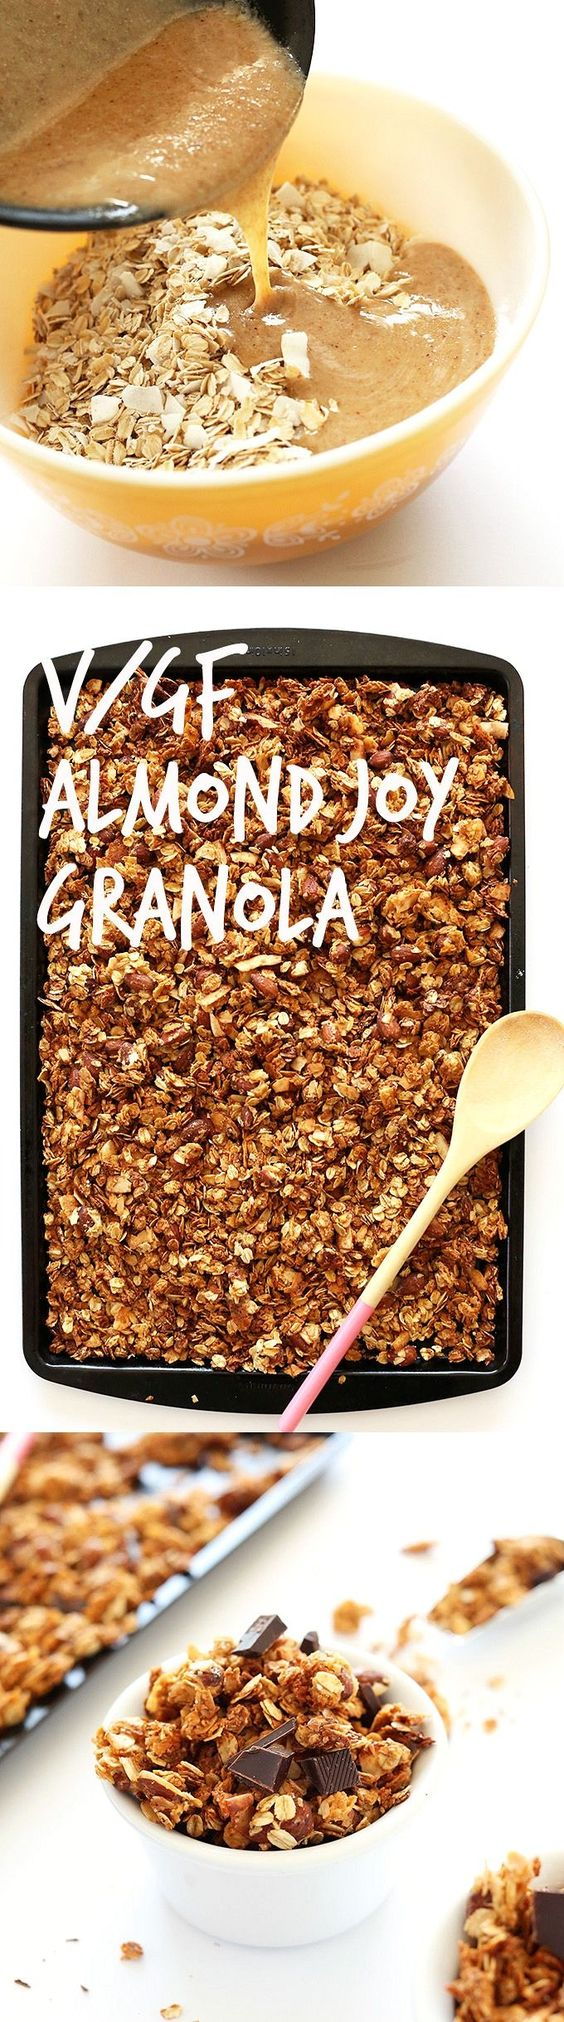 Almond Joy Granola | Recipe | Almond joy, Granola and Minimalist baker